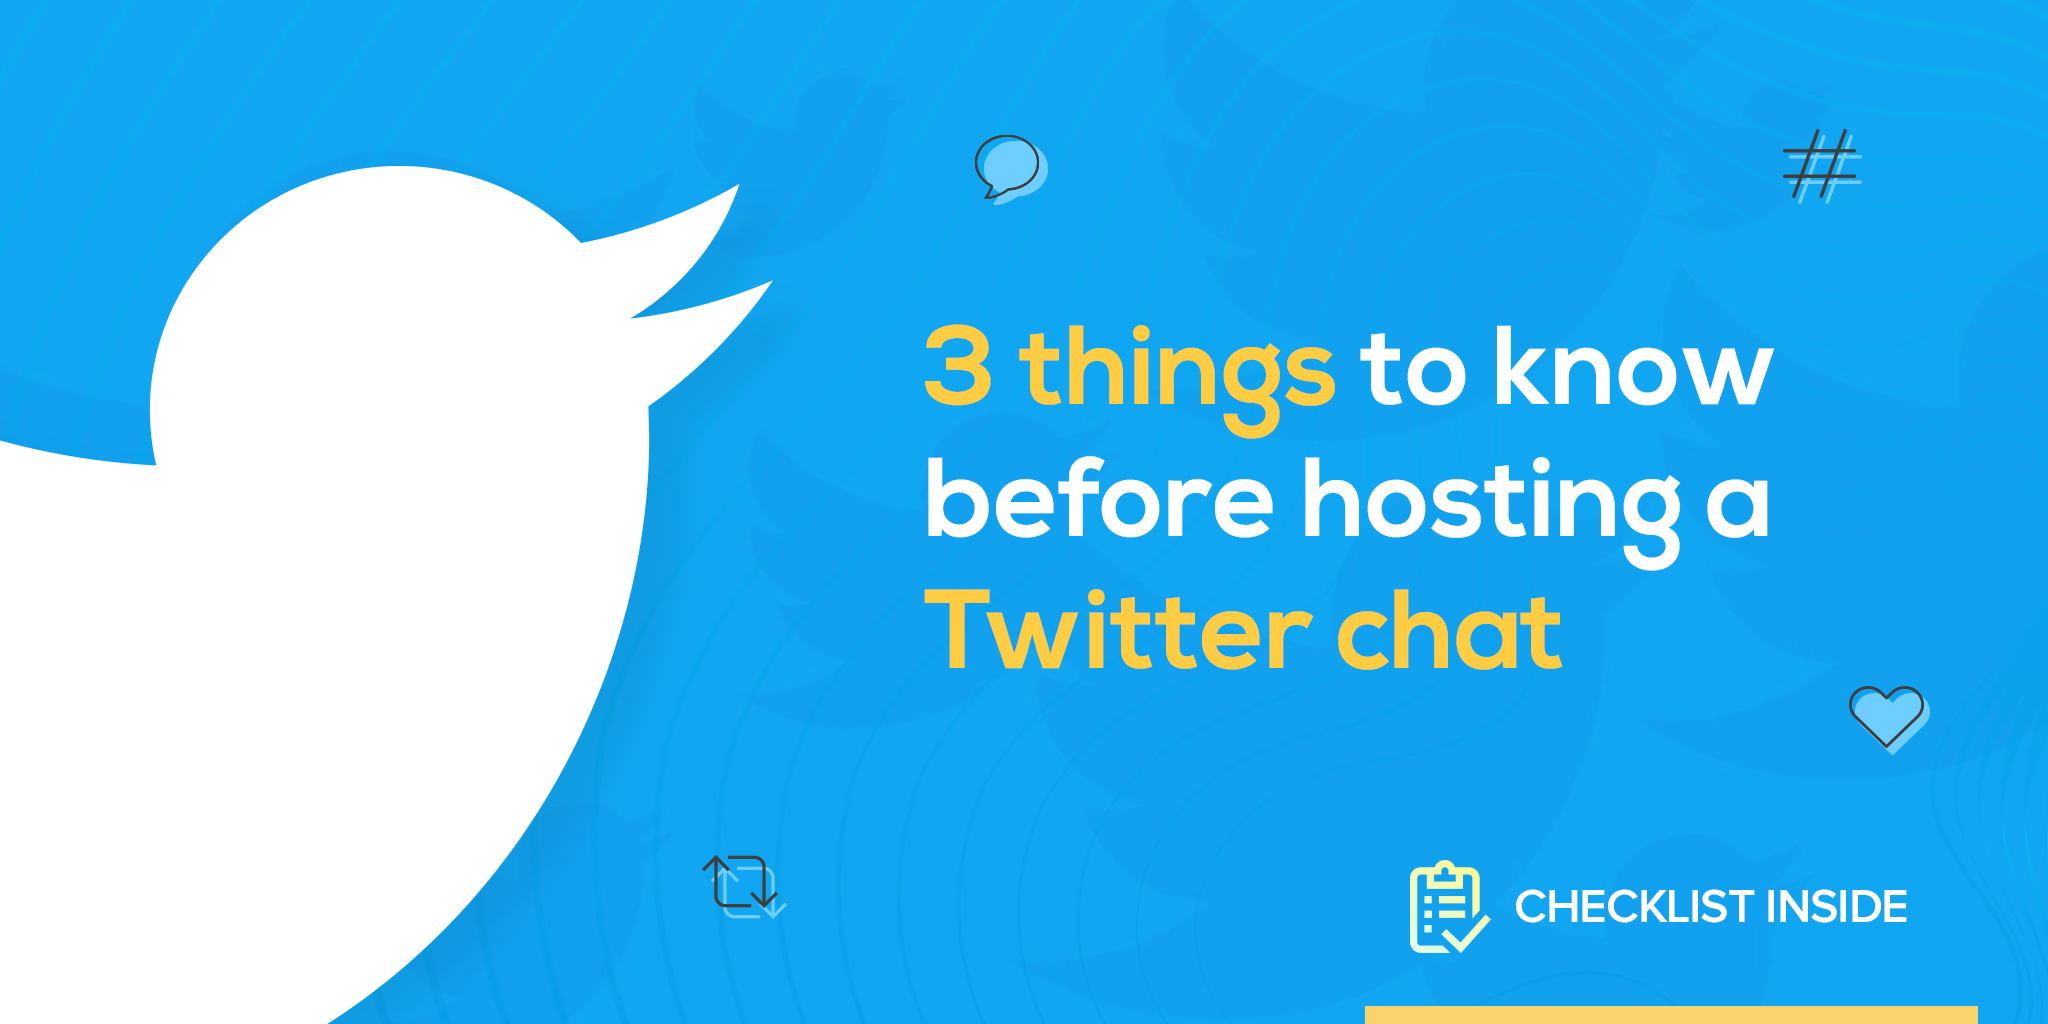 3 things to know before hosting a Twitter chat